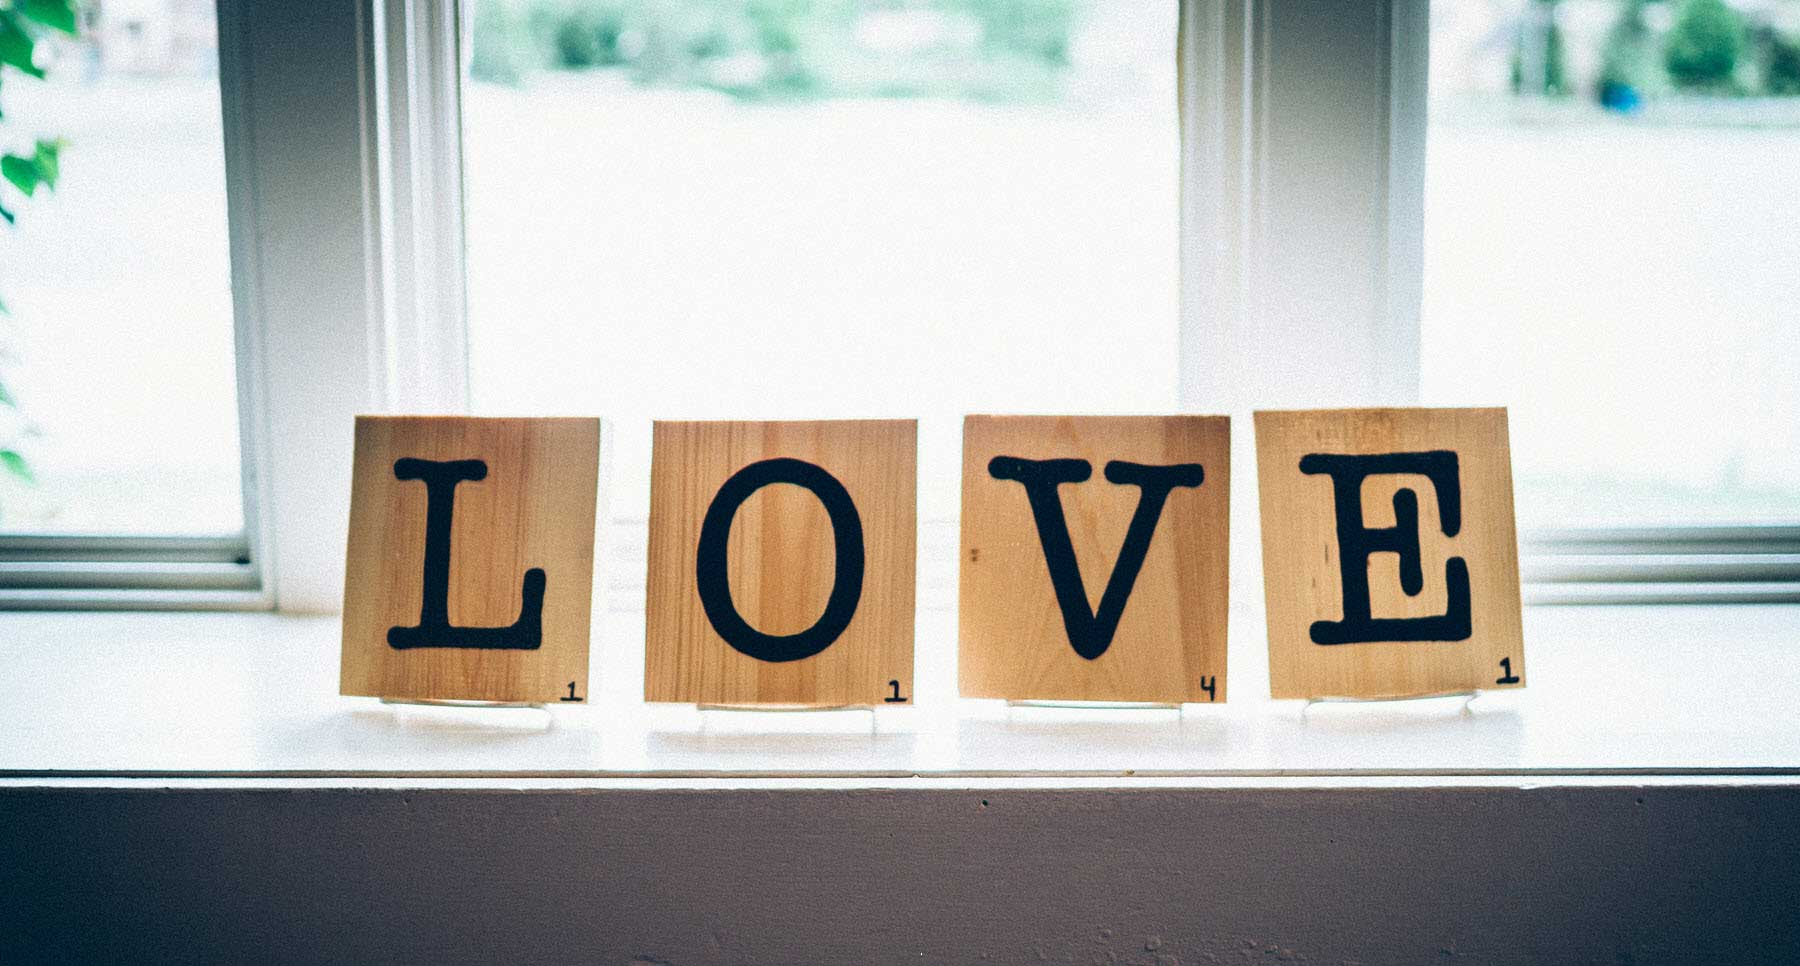 scrabble tiles that spell love on a window sill